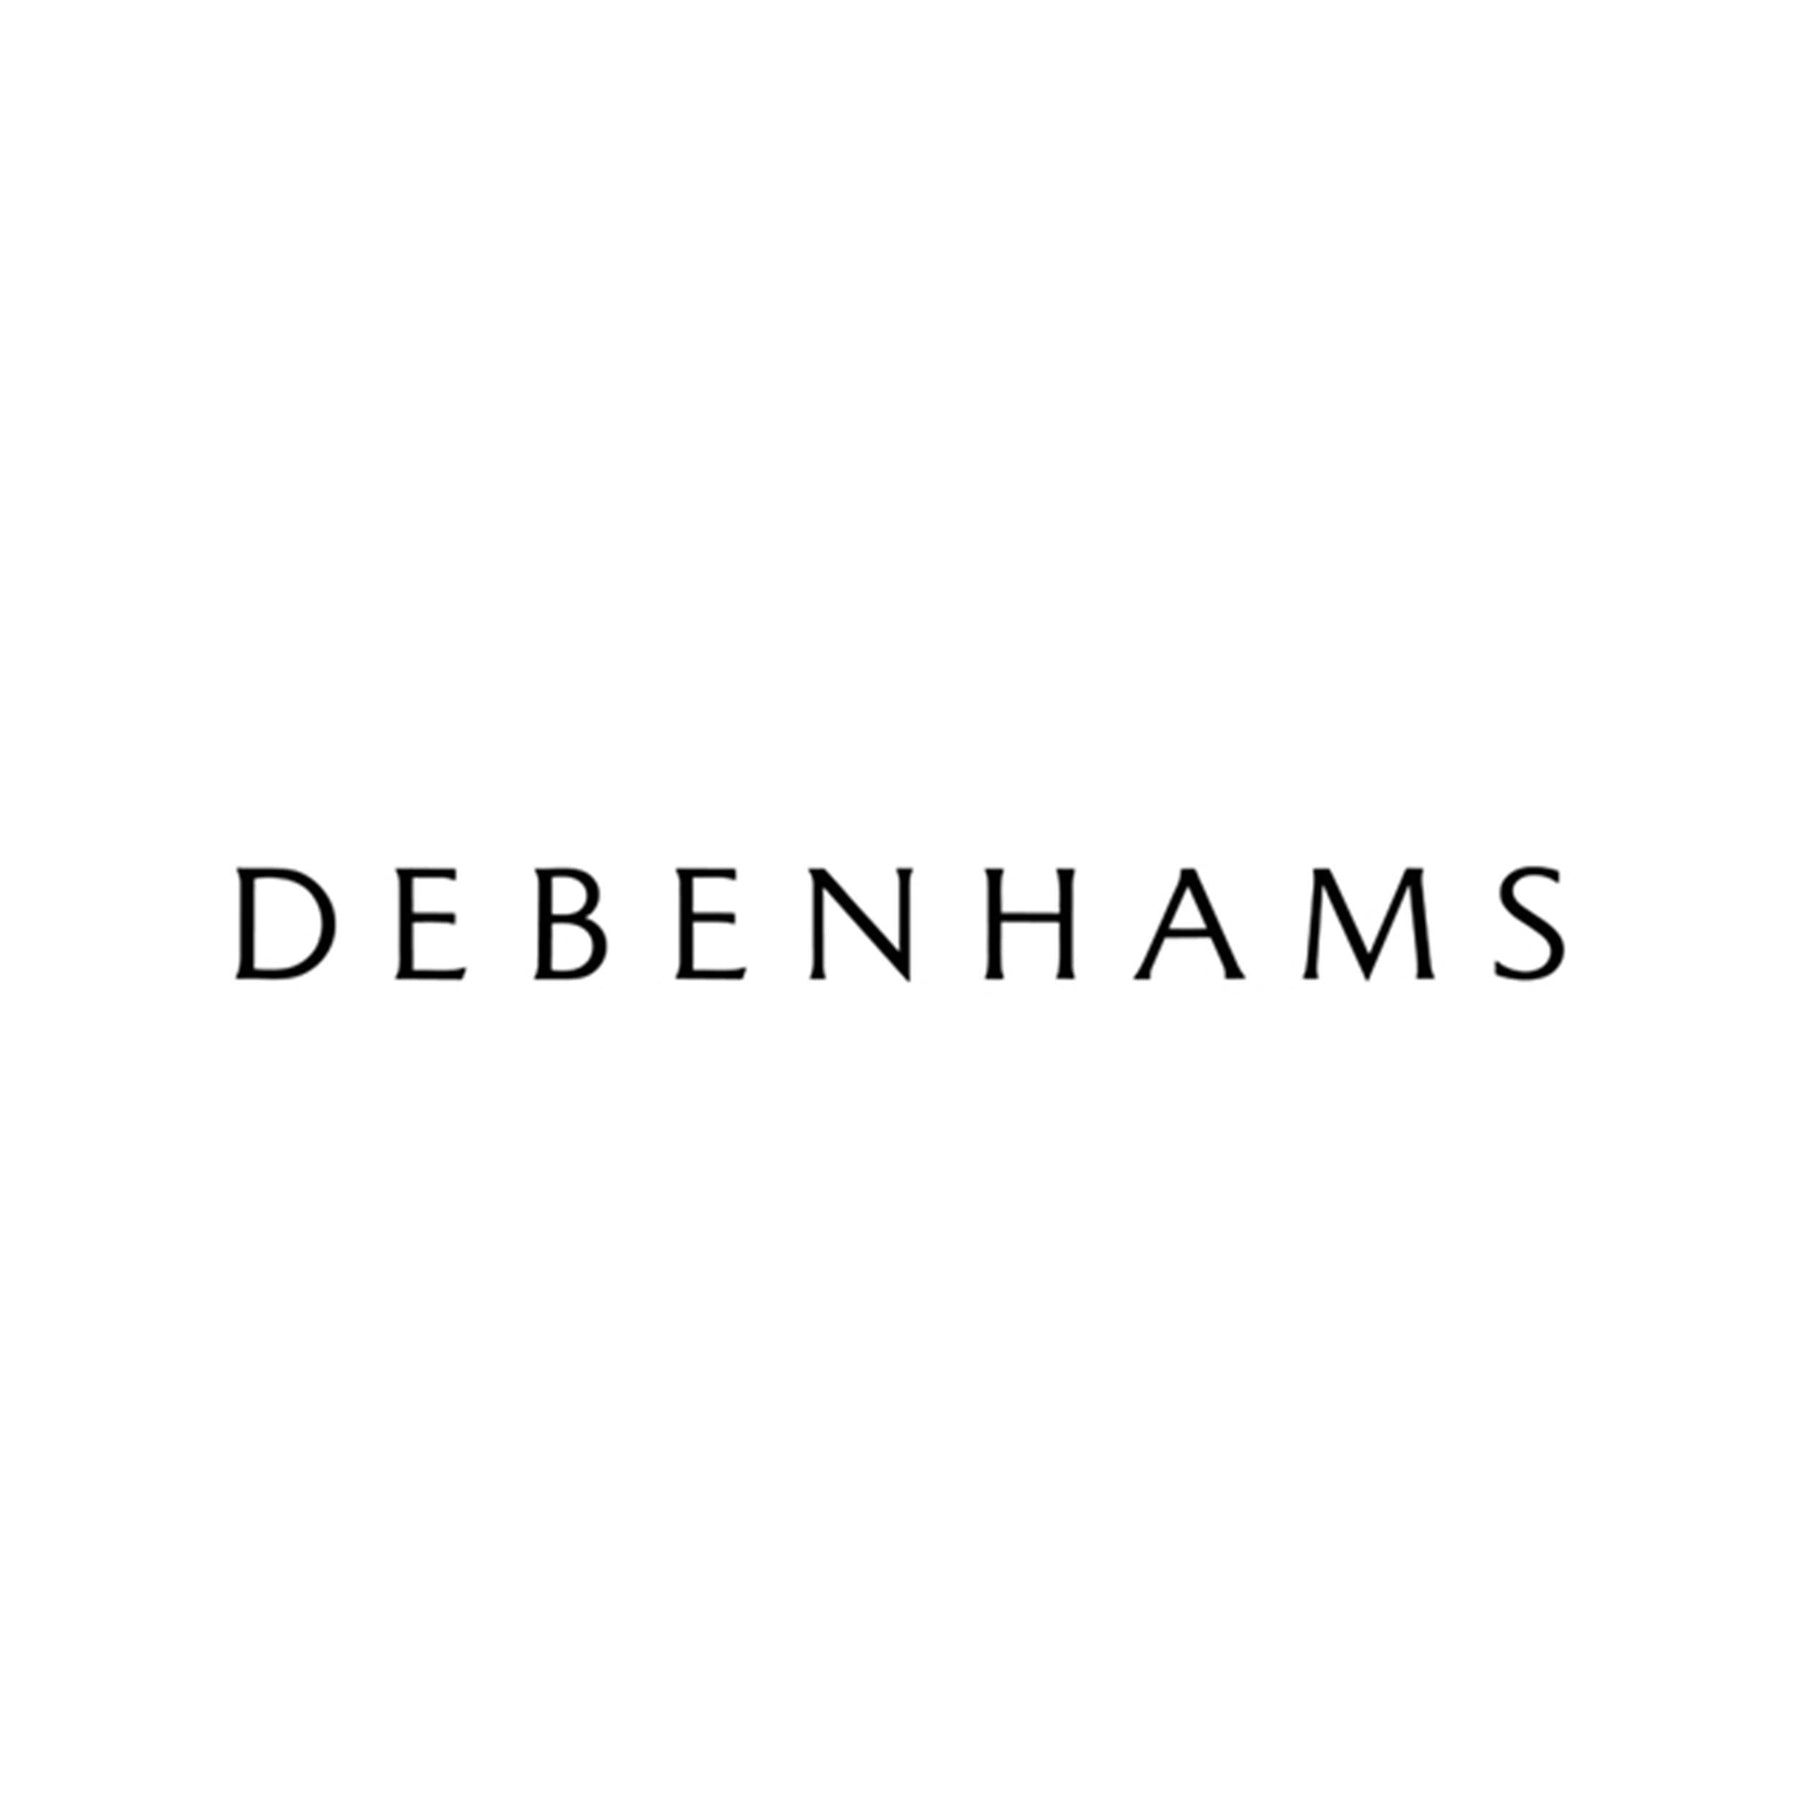 Debenhams Case Study